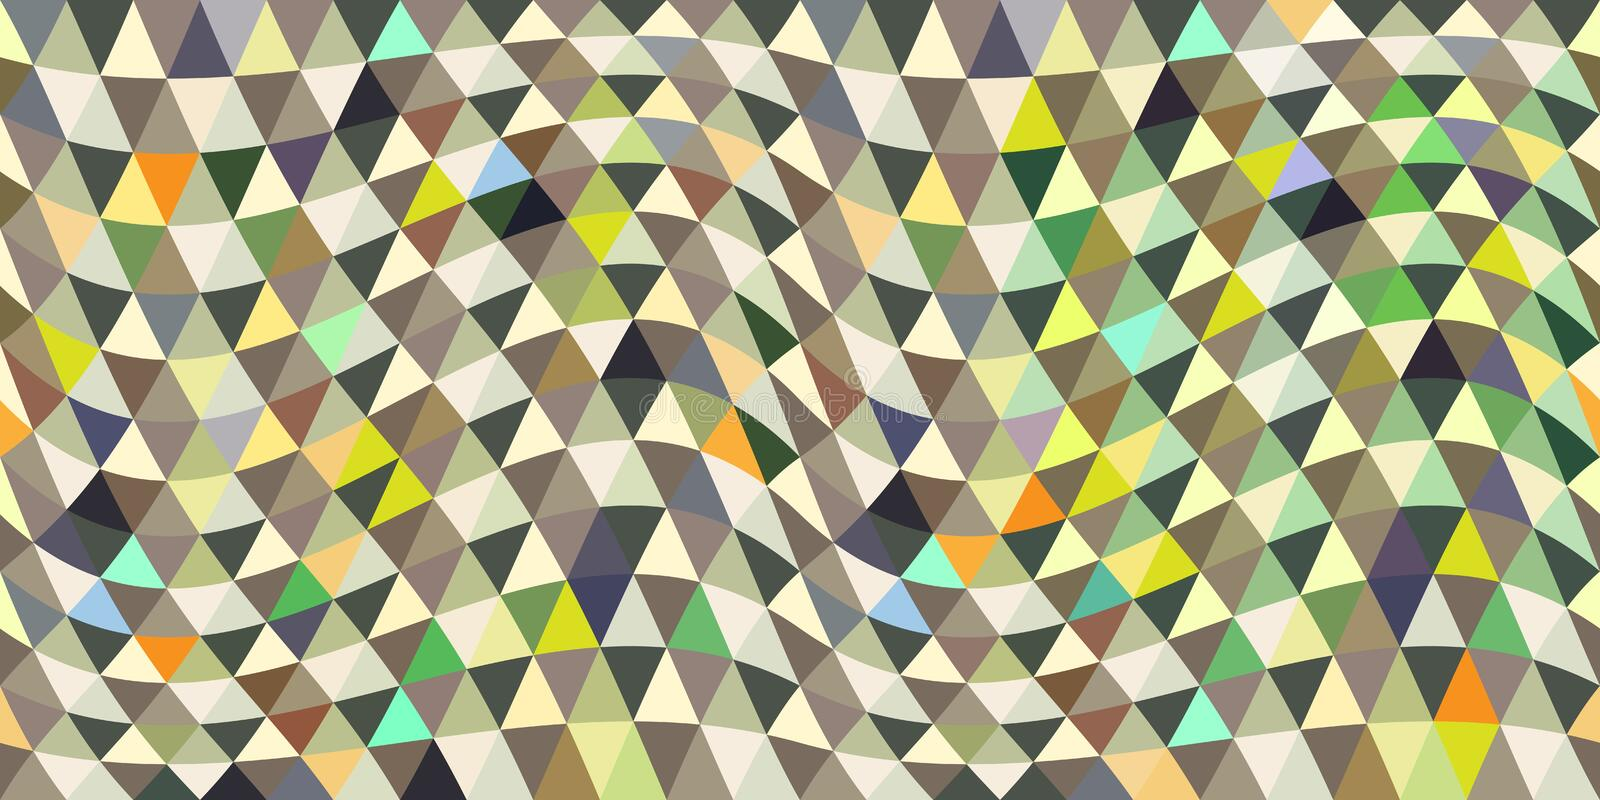 Repeating geometric tiles with triangles stock illustration